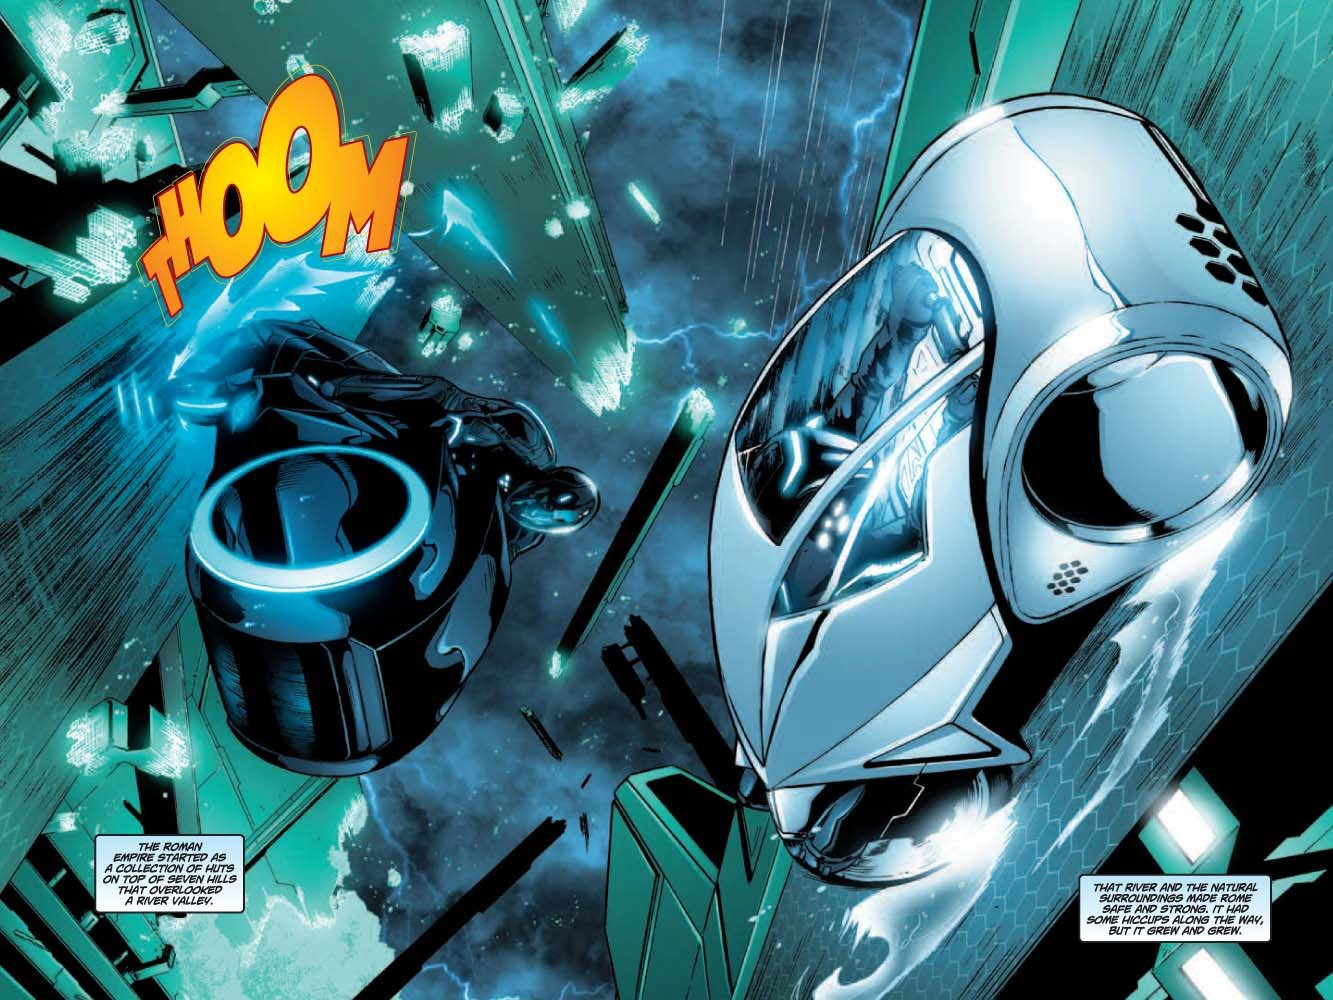 One of Tong's panels from TRON BETRAYAL.